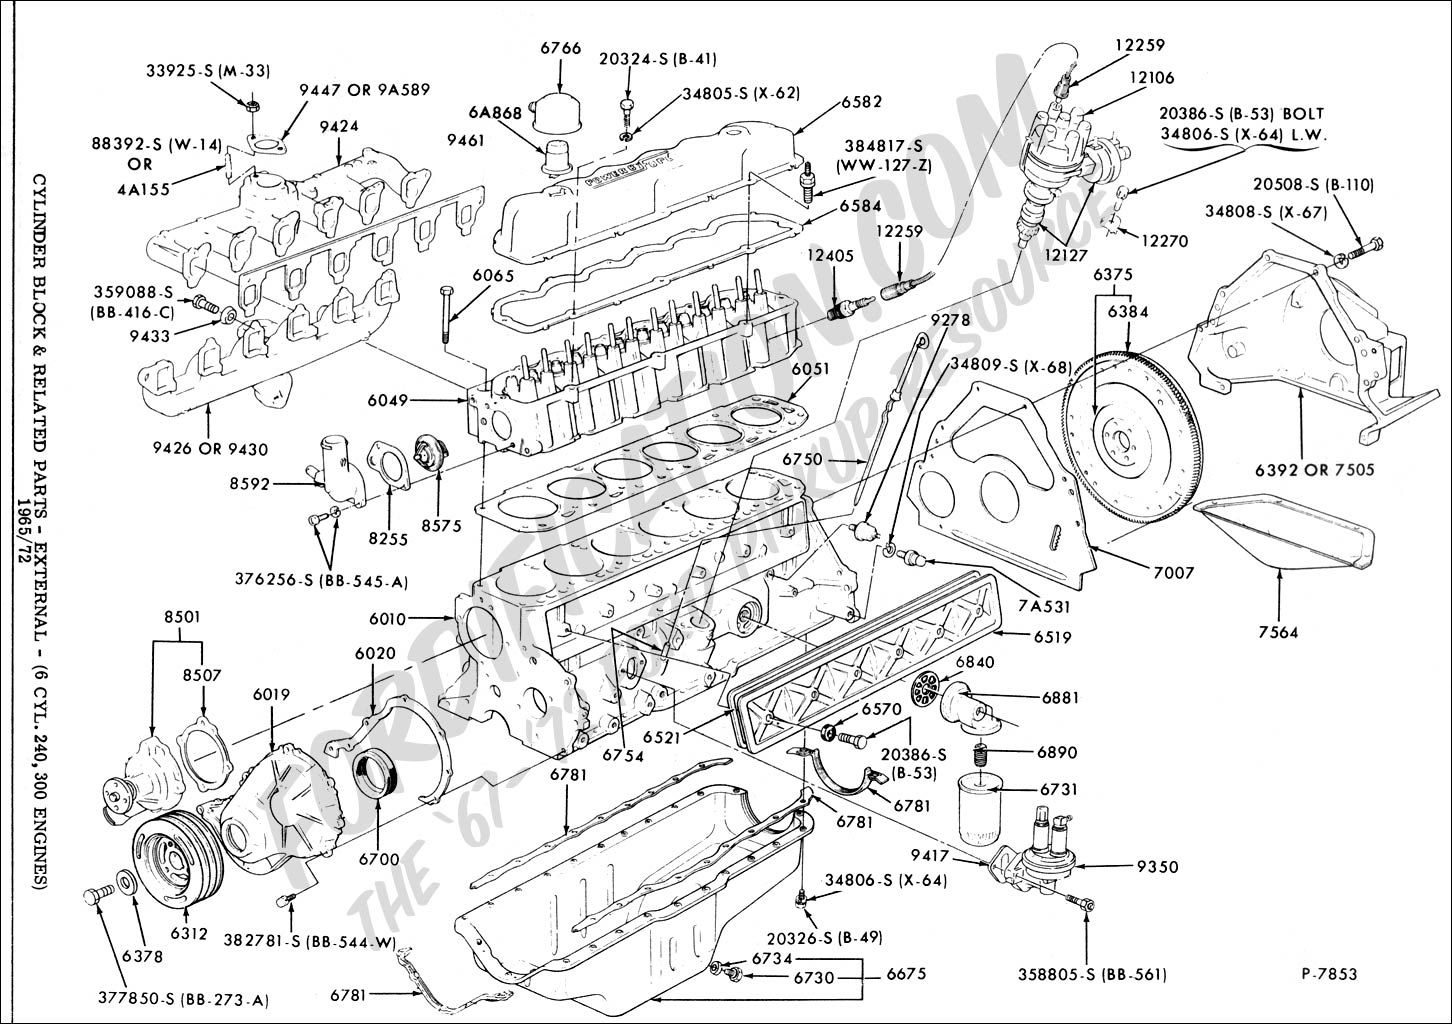 medium resolution of 1996 f150 engine diagram manual e book 2007 f150 cylinder diagram 1996 ford f 150 6